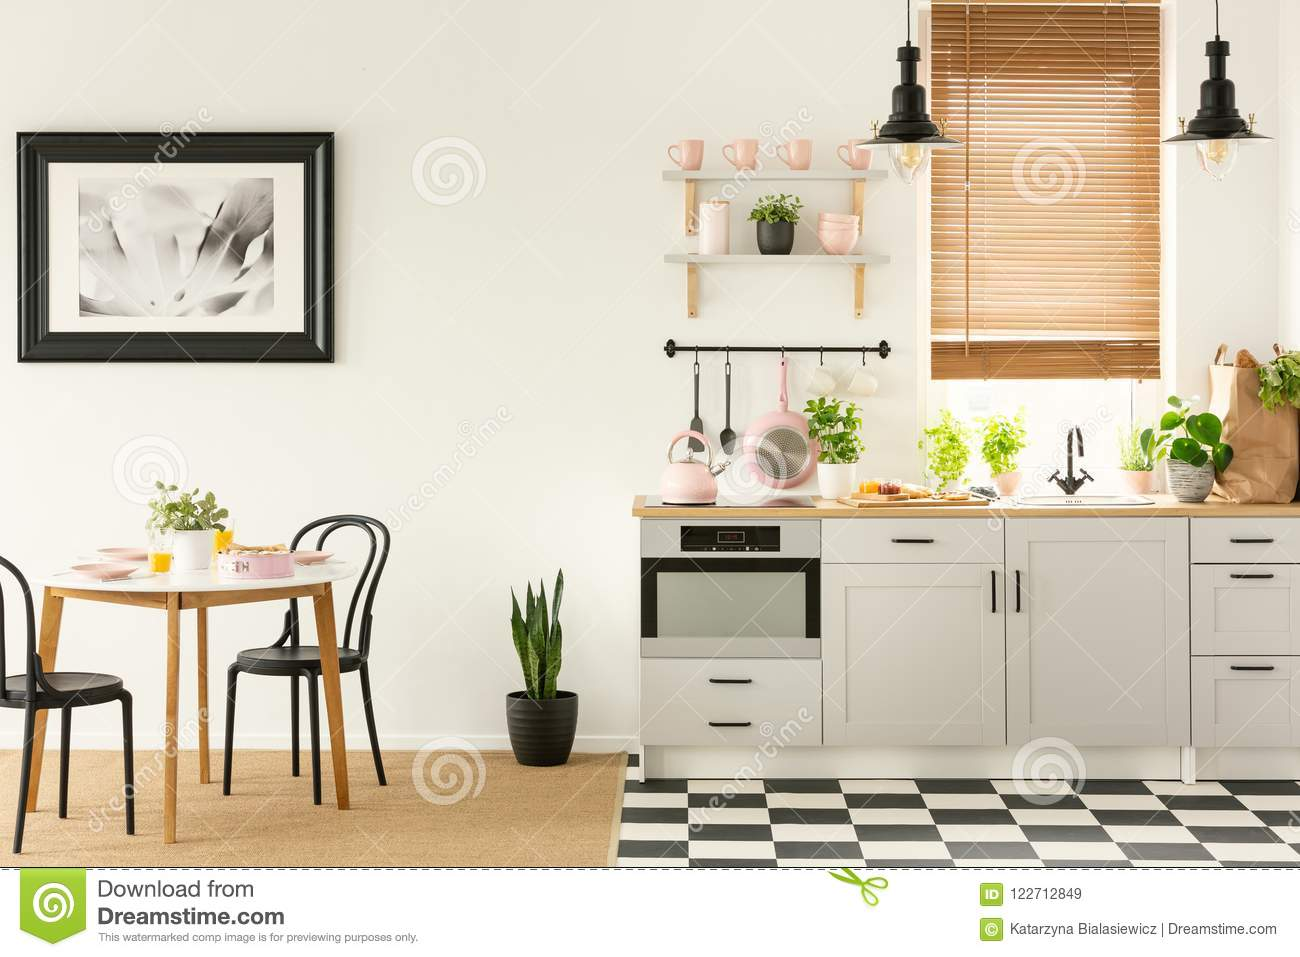 Real Photo Of An Open Space Kitchen And Dining Room With Black A